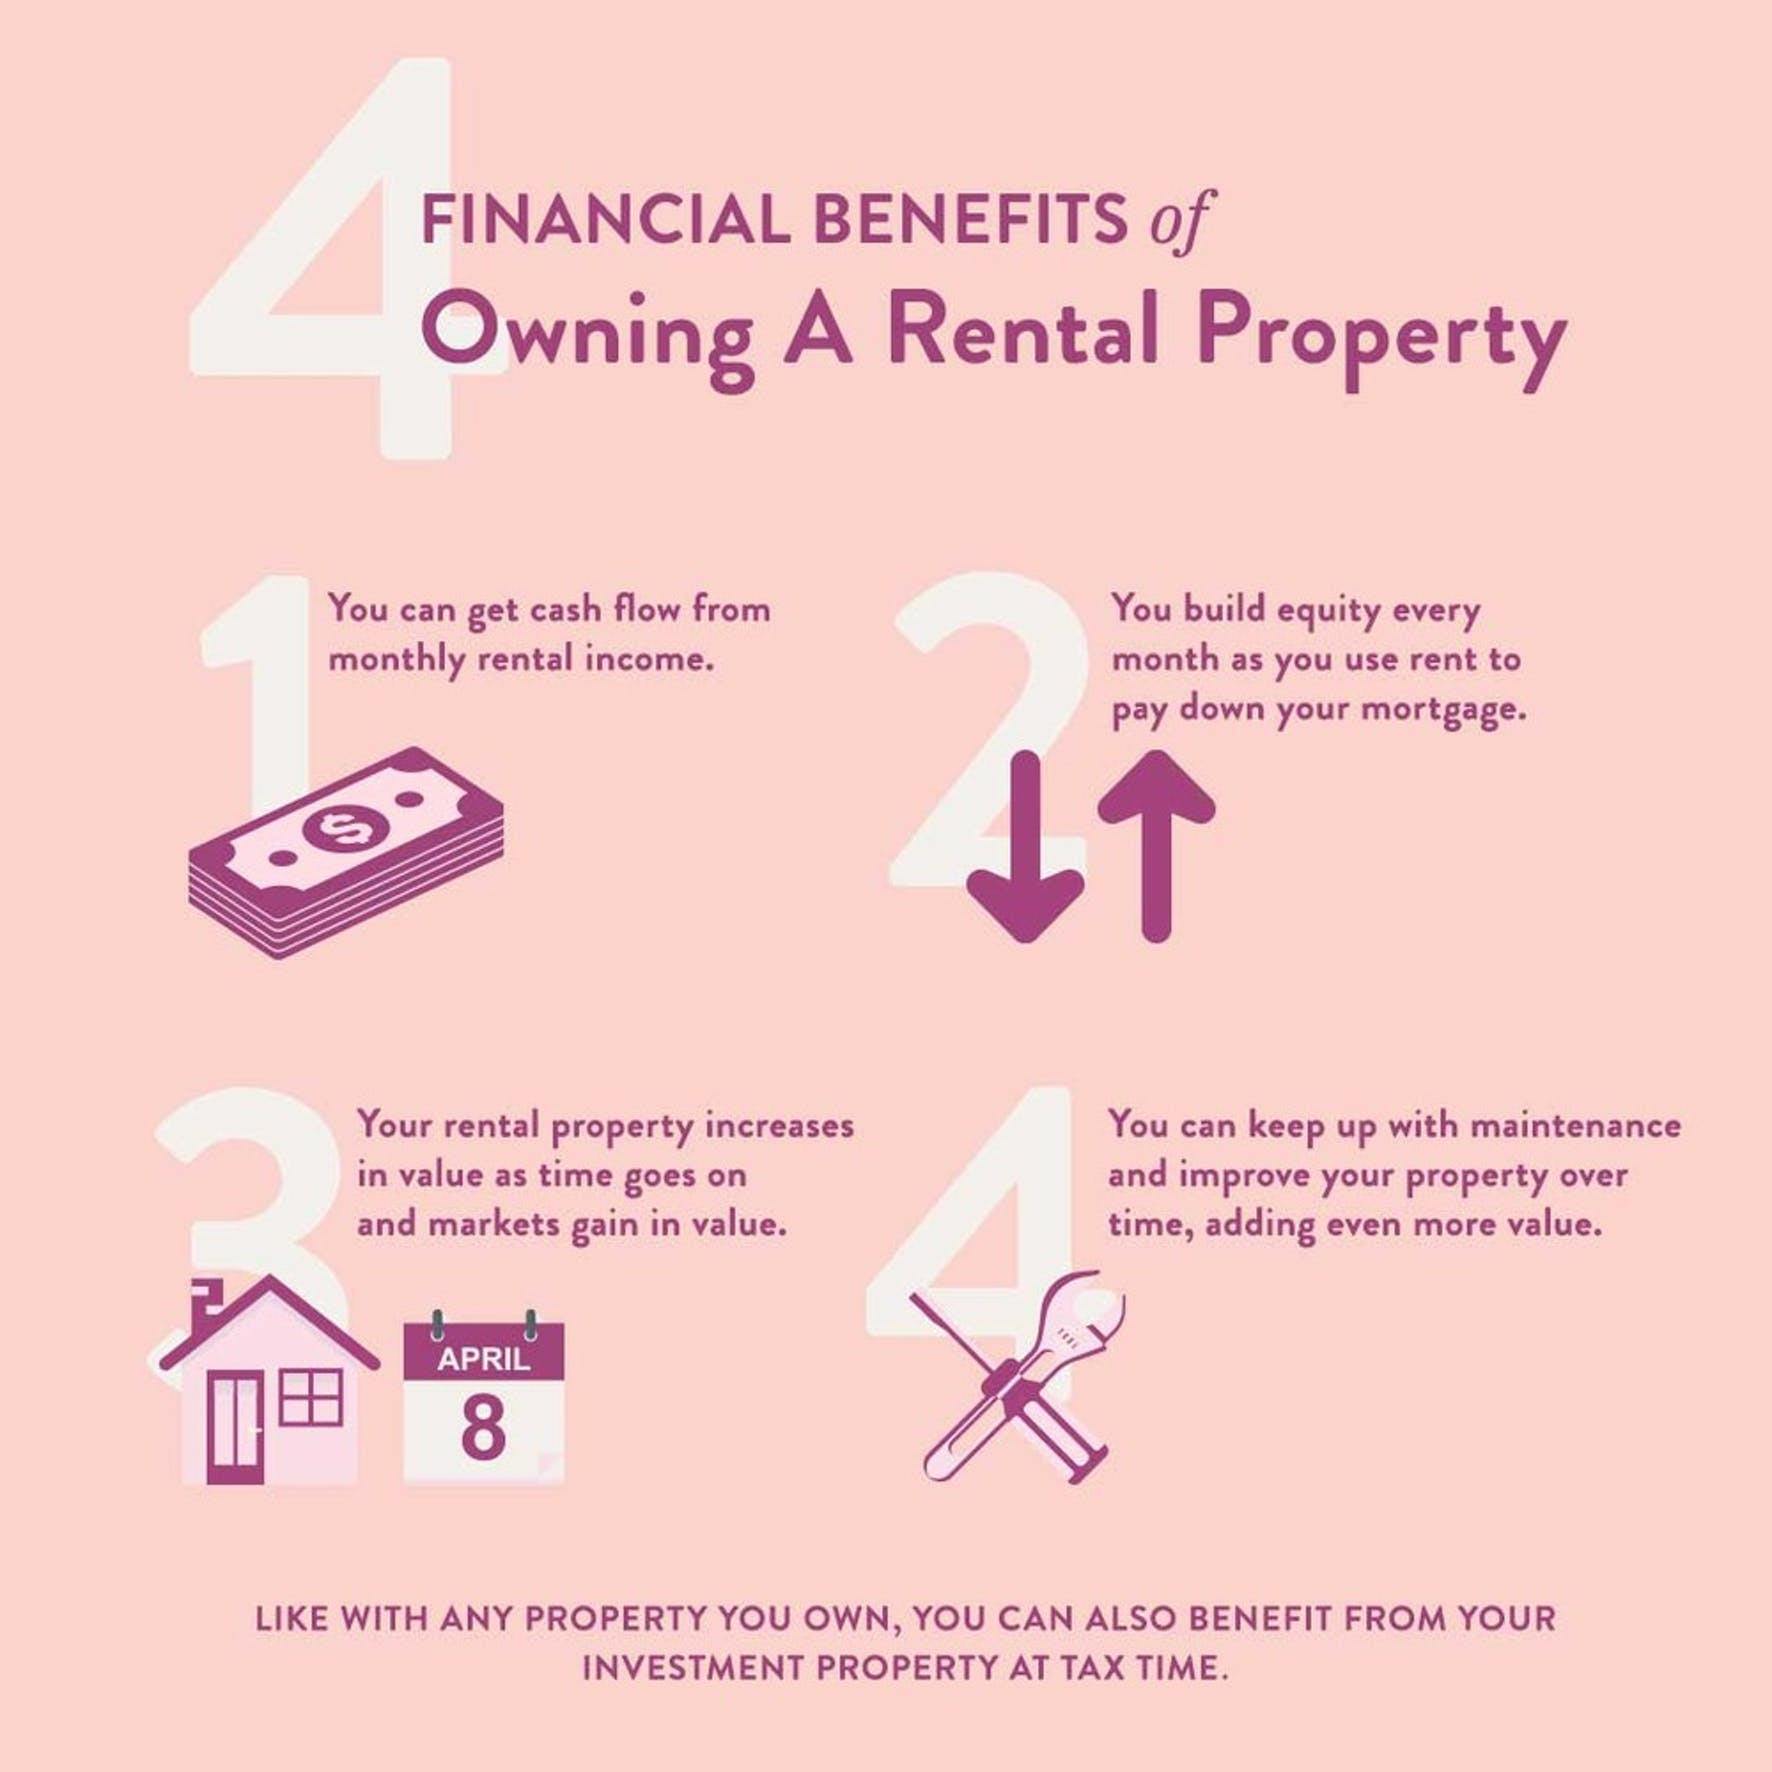 Financial benefits of owning a rental property